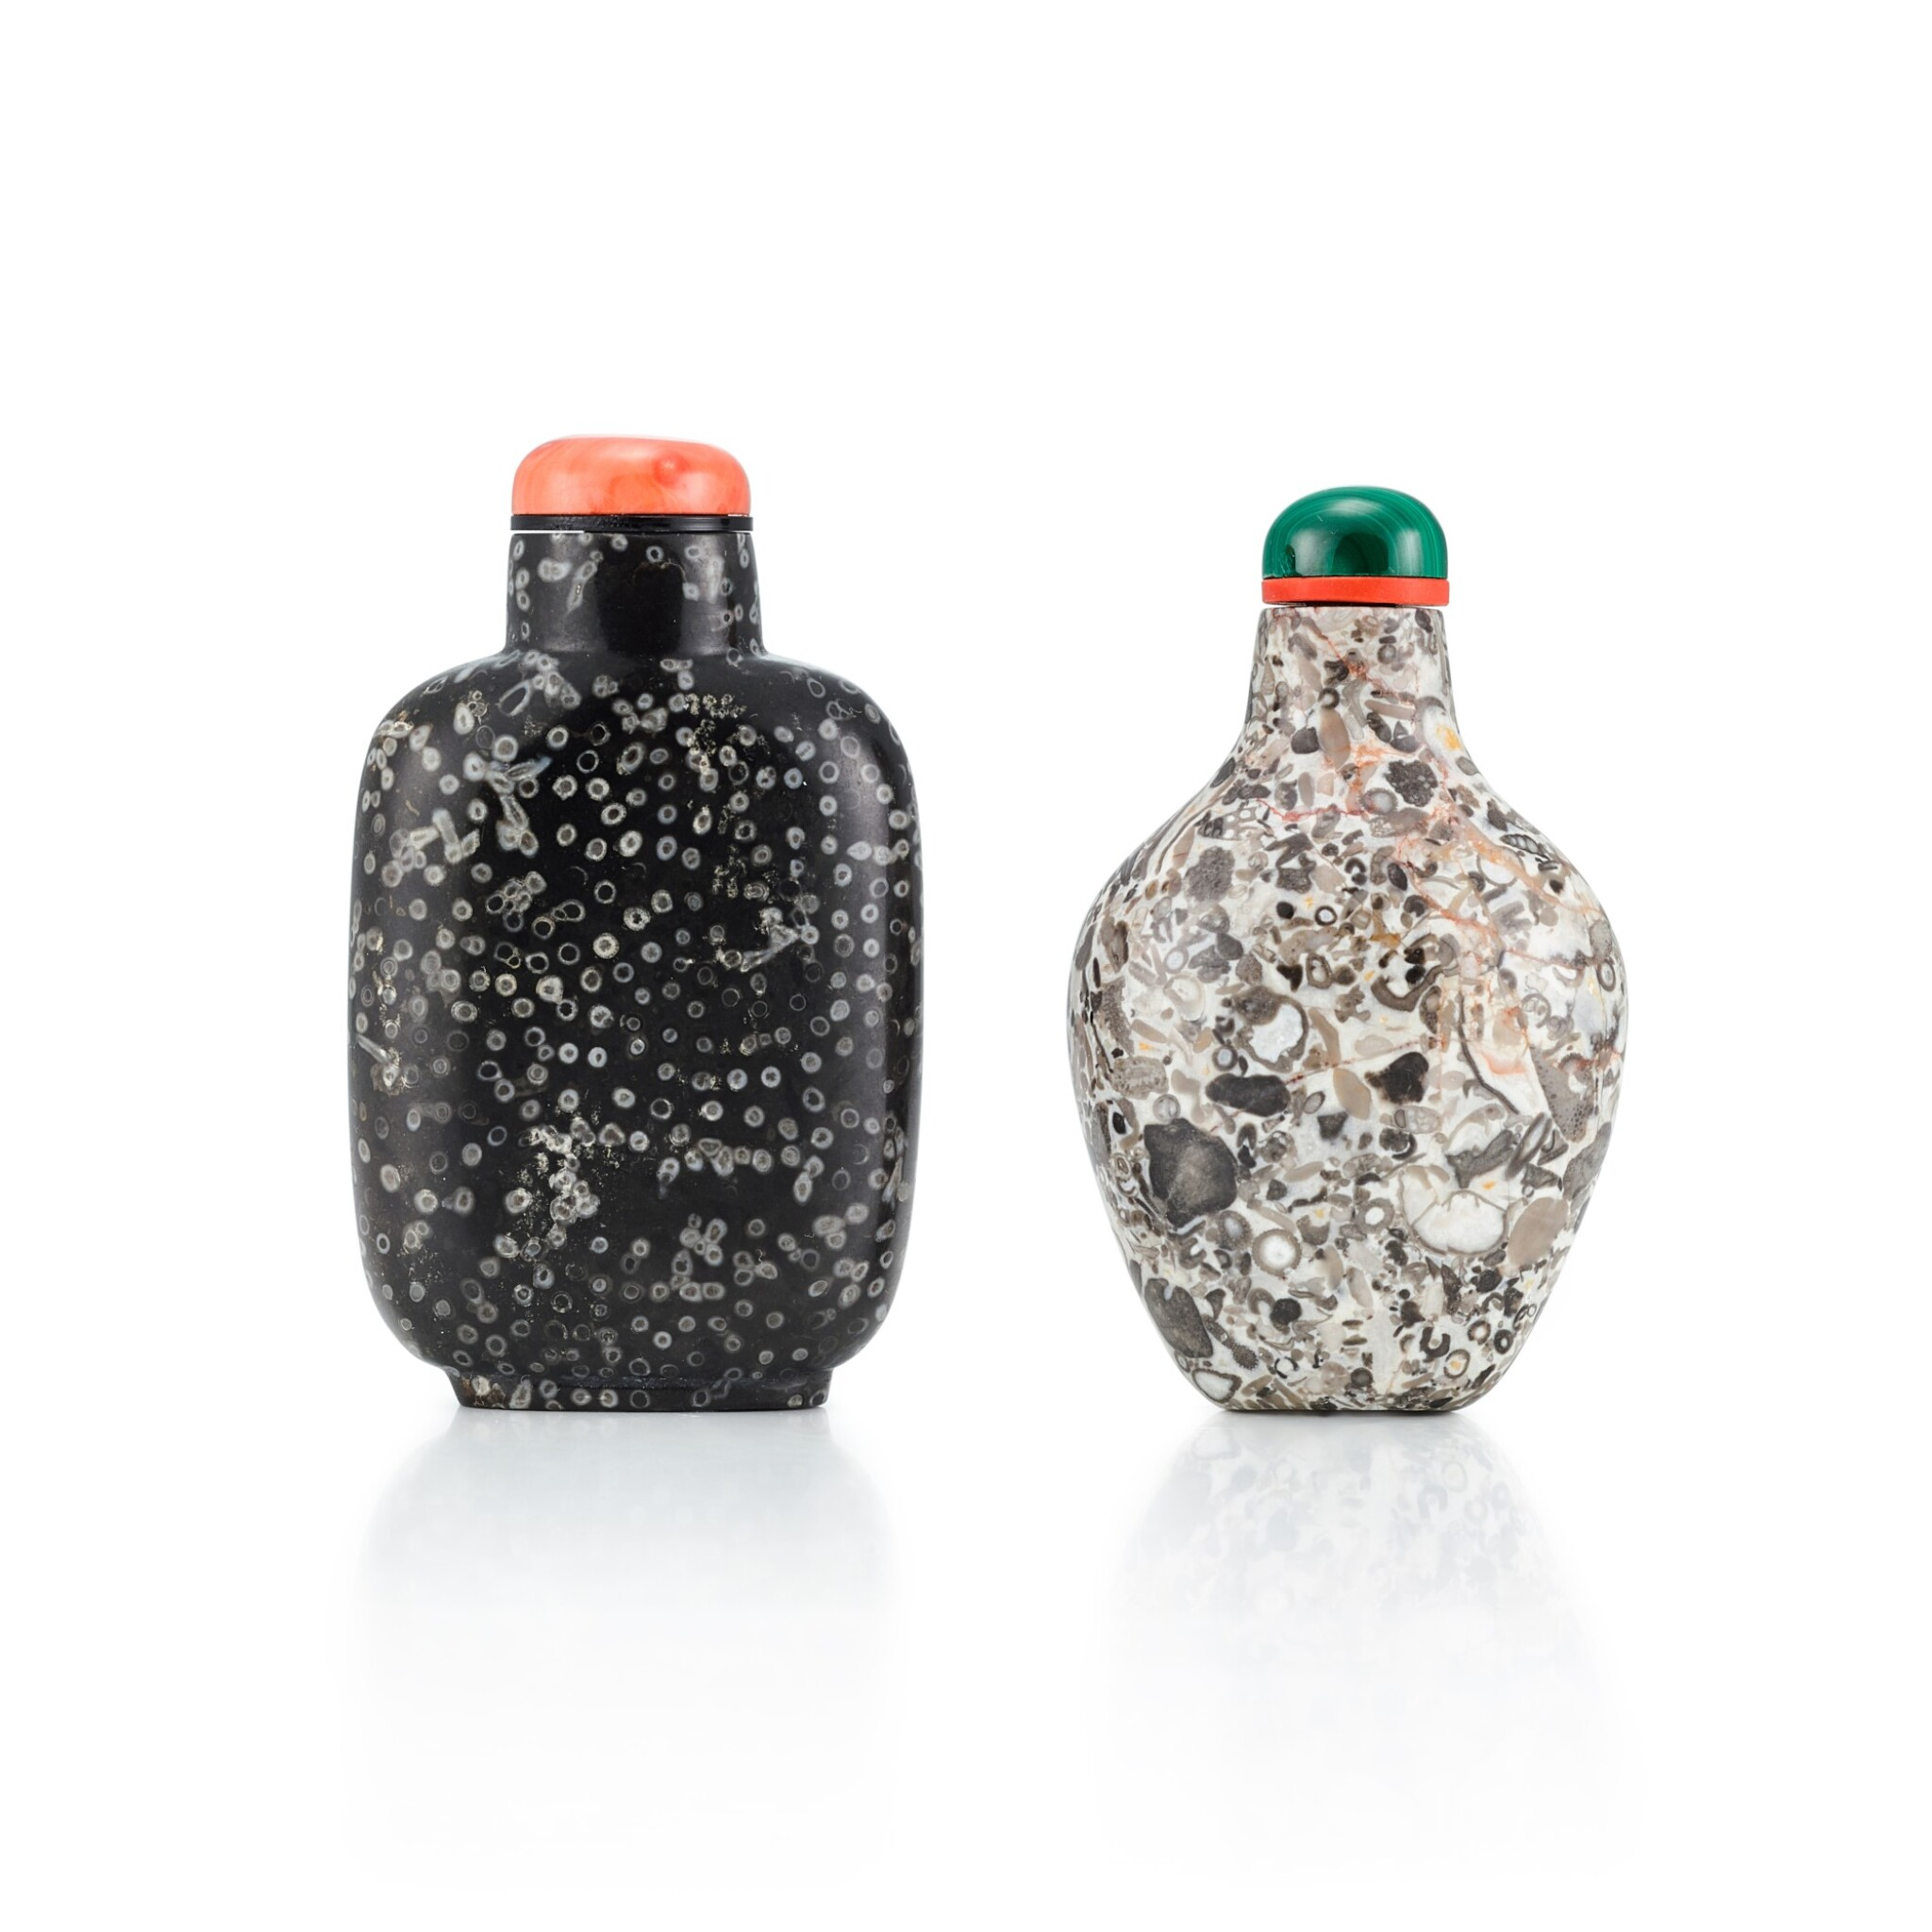 View full screen - View 1 of Lot 3043. Two Fossiliferous Limestone Snuff Bottles Qing Dynasty, 18th - 19th Century | 清十八至十九世紀 石化石灰石鼻煙壺兩件.